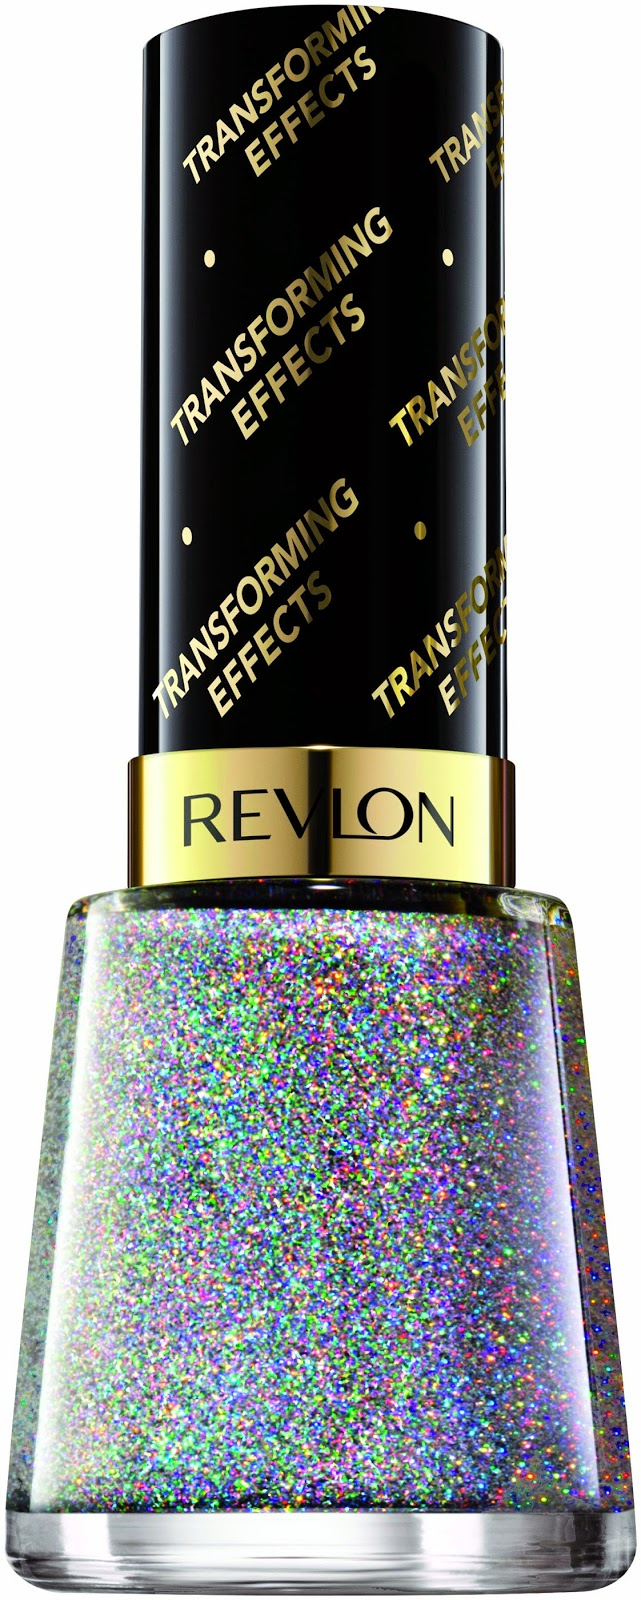 Reviews Day Tuesday Ft Revlon S Transforming Effects Swatches Spill The Beauty